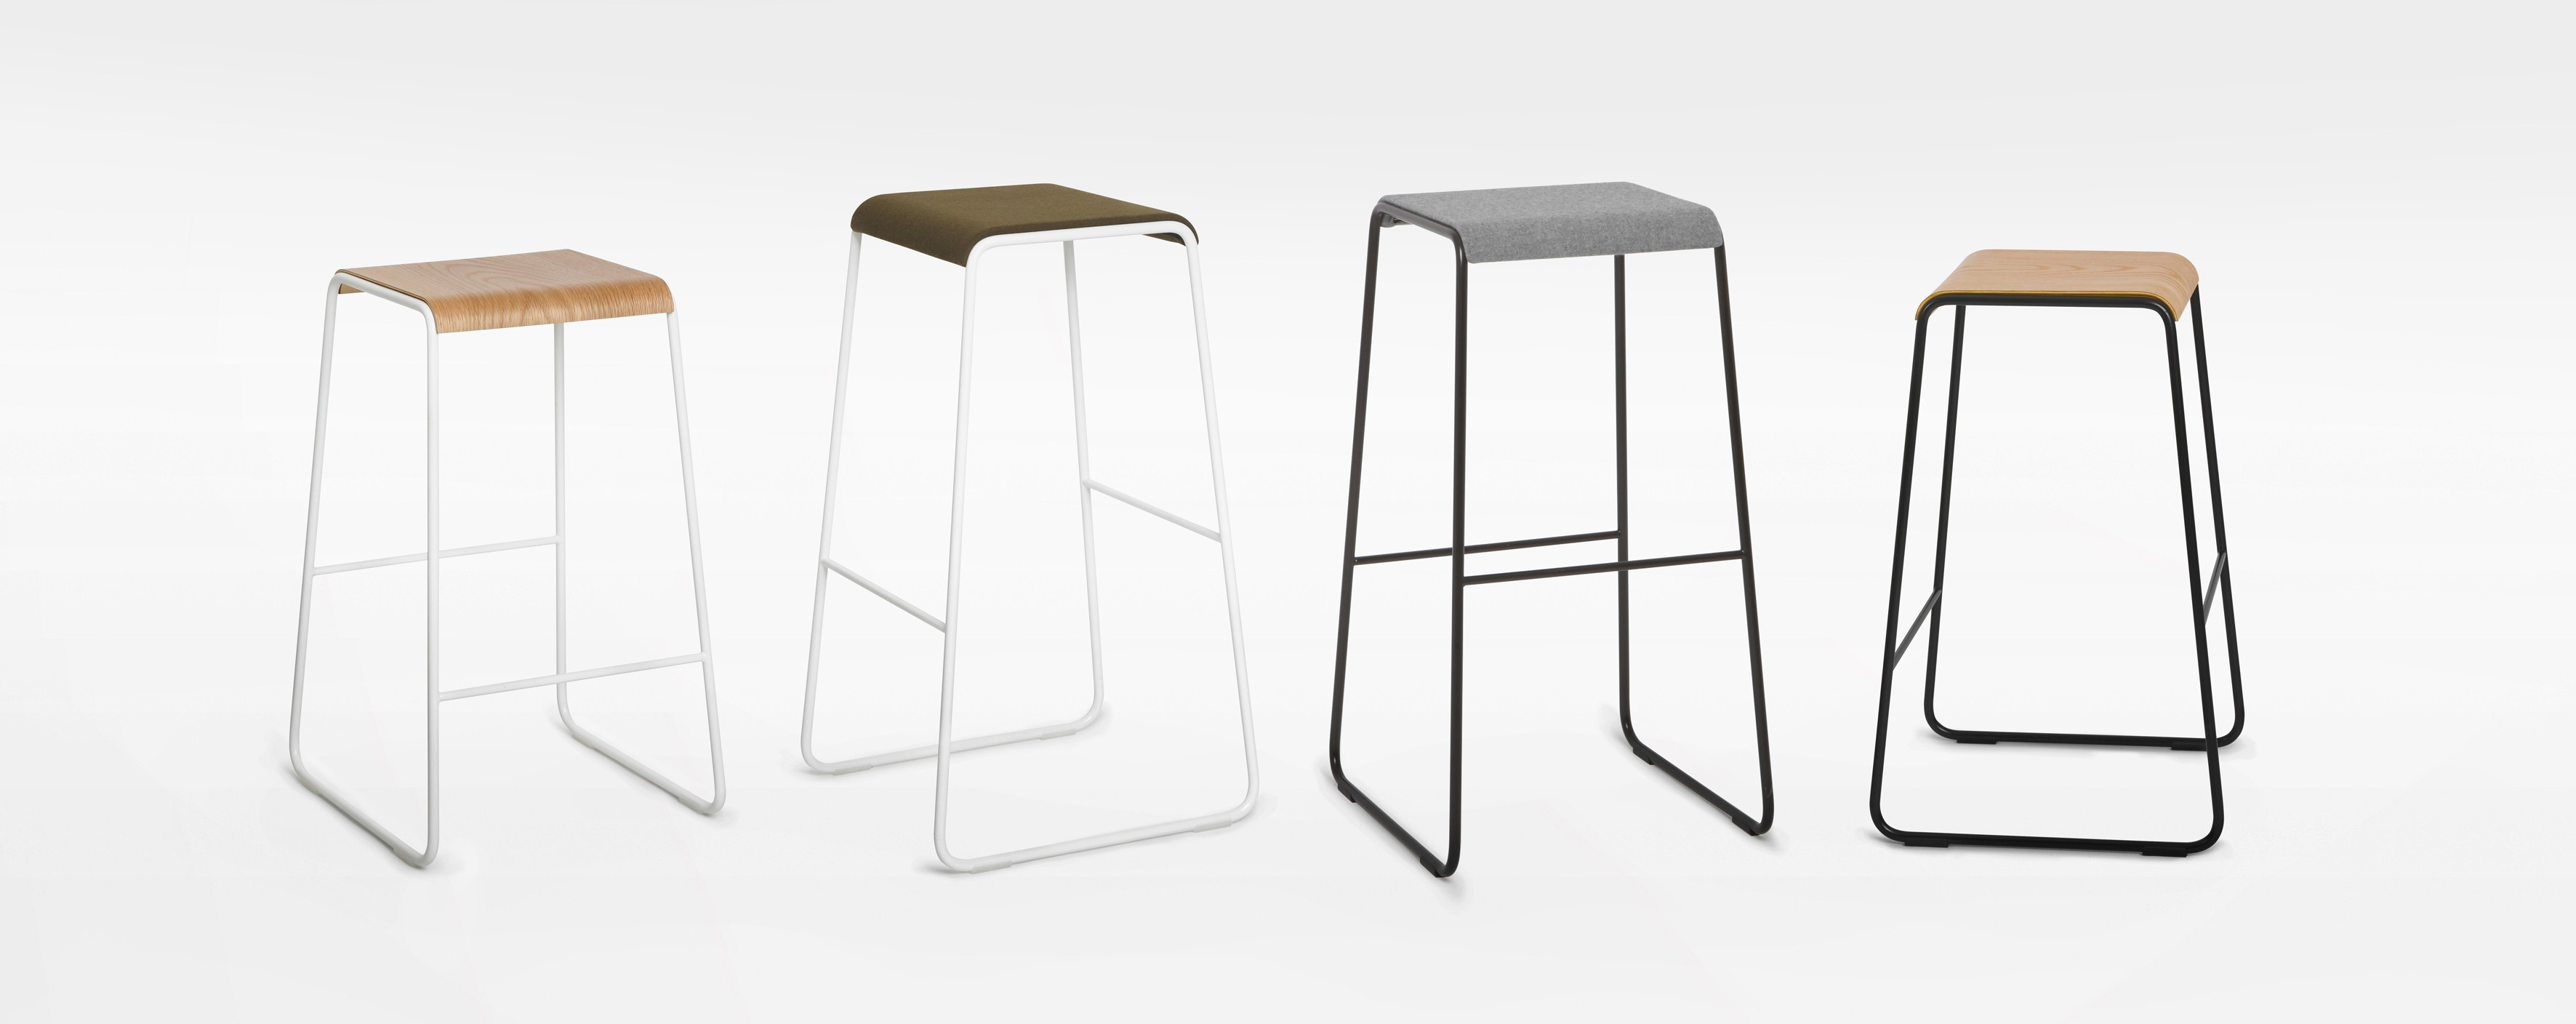 S2 stool: a simplicity of design that is often difficult to achieve. Photo: © David Moreland Design